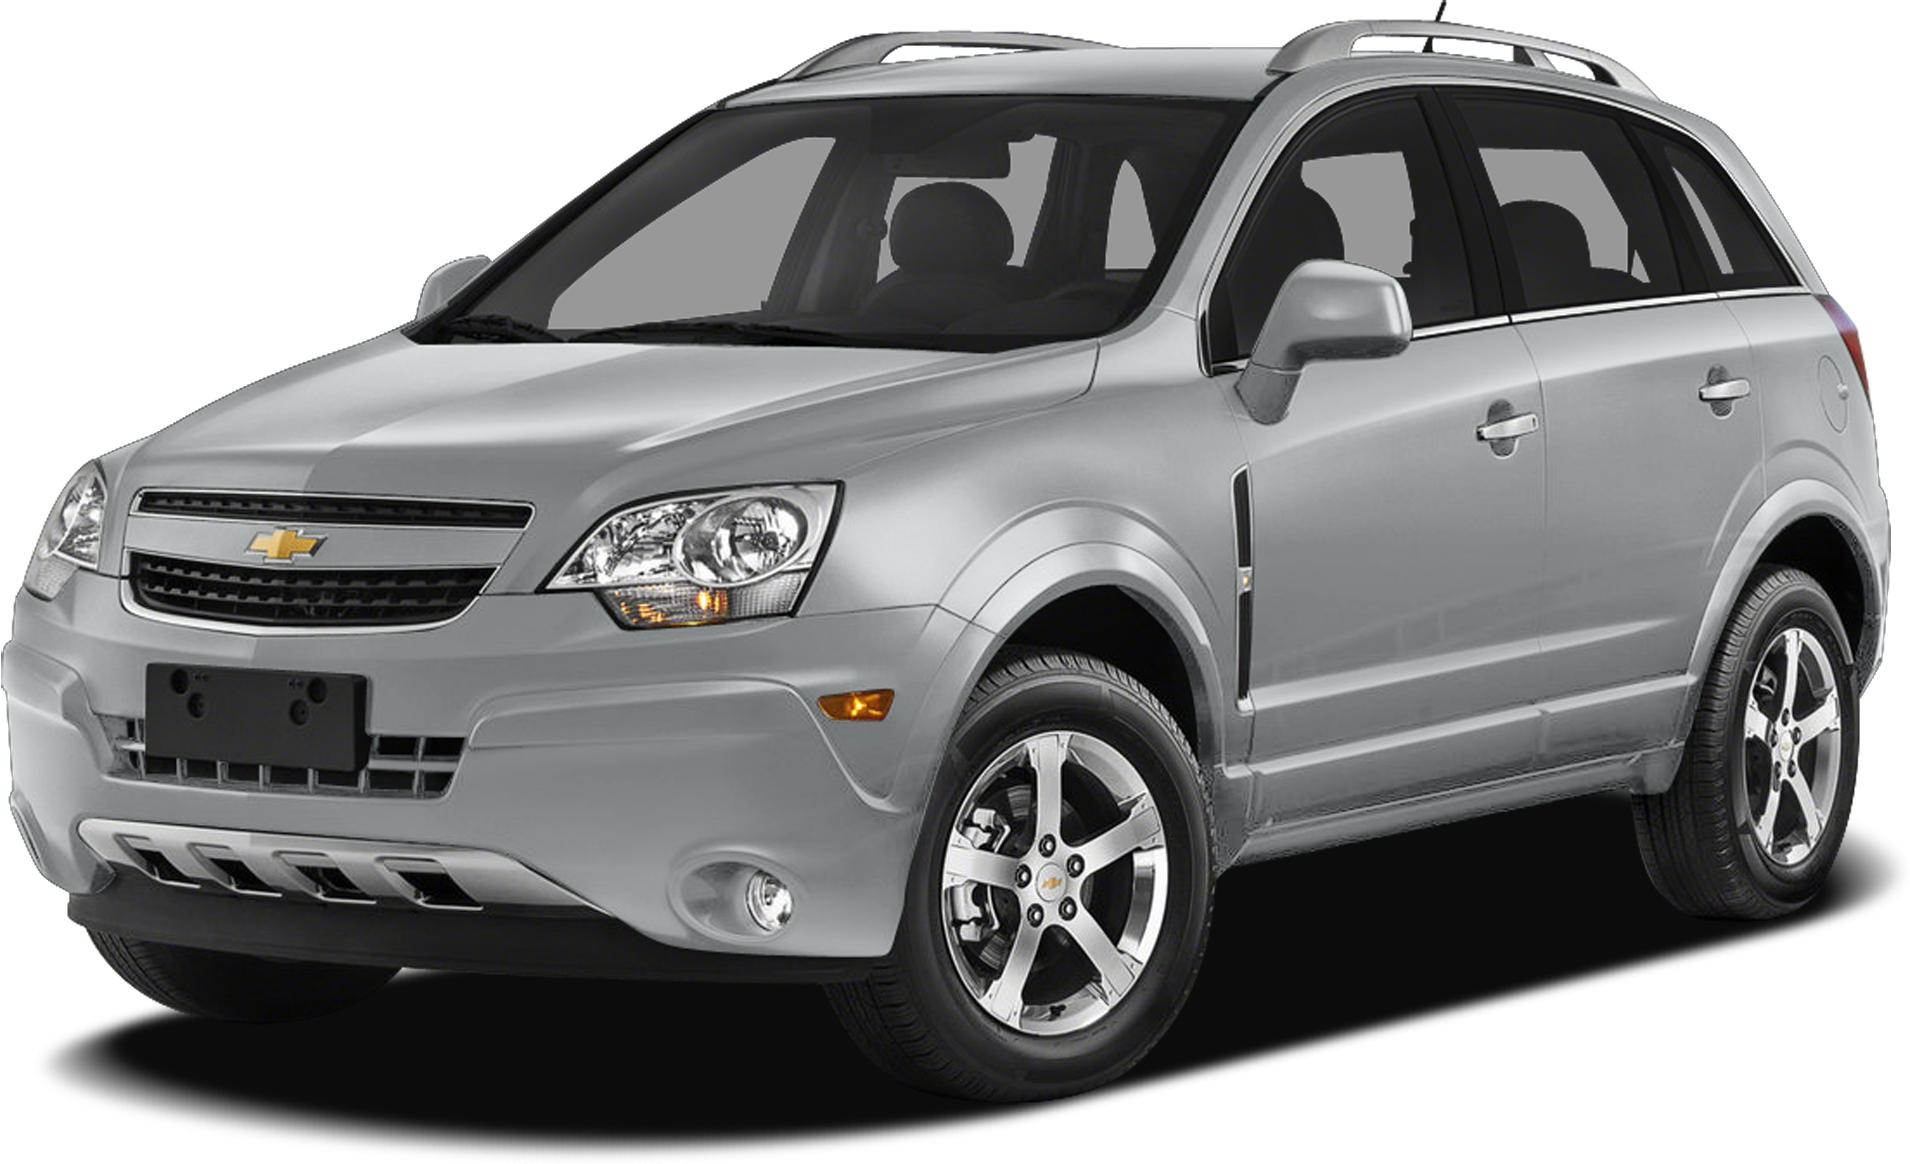 2012 chevrolet captiva sport fleet ls w 2ls jackson tn. Black Bedroom Furniture Sets. Home Design Ideas